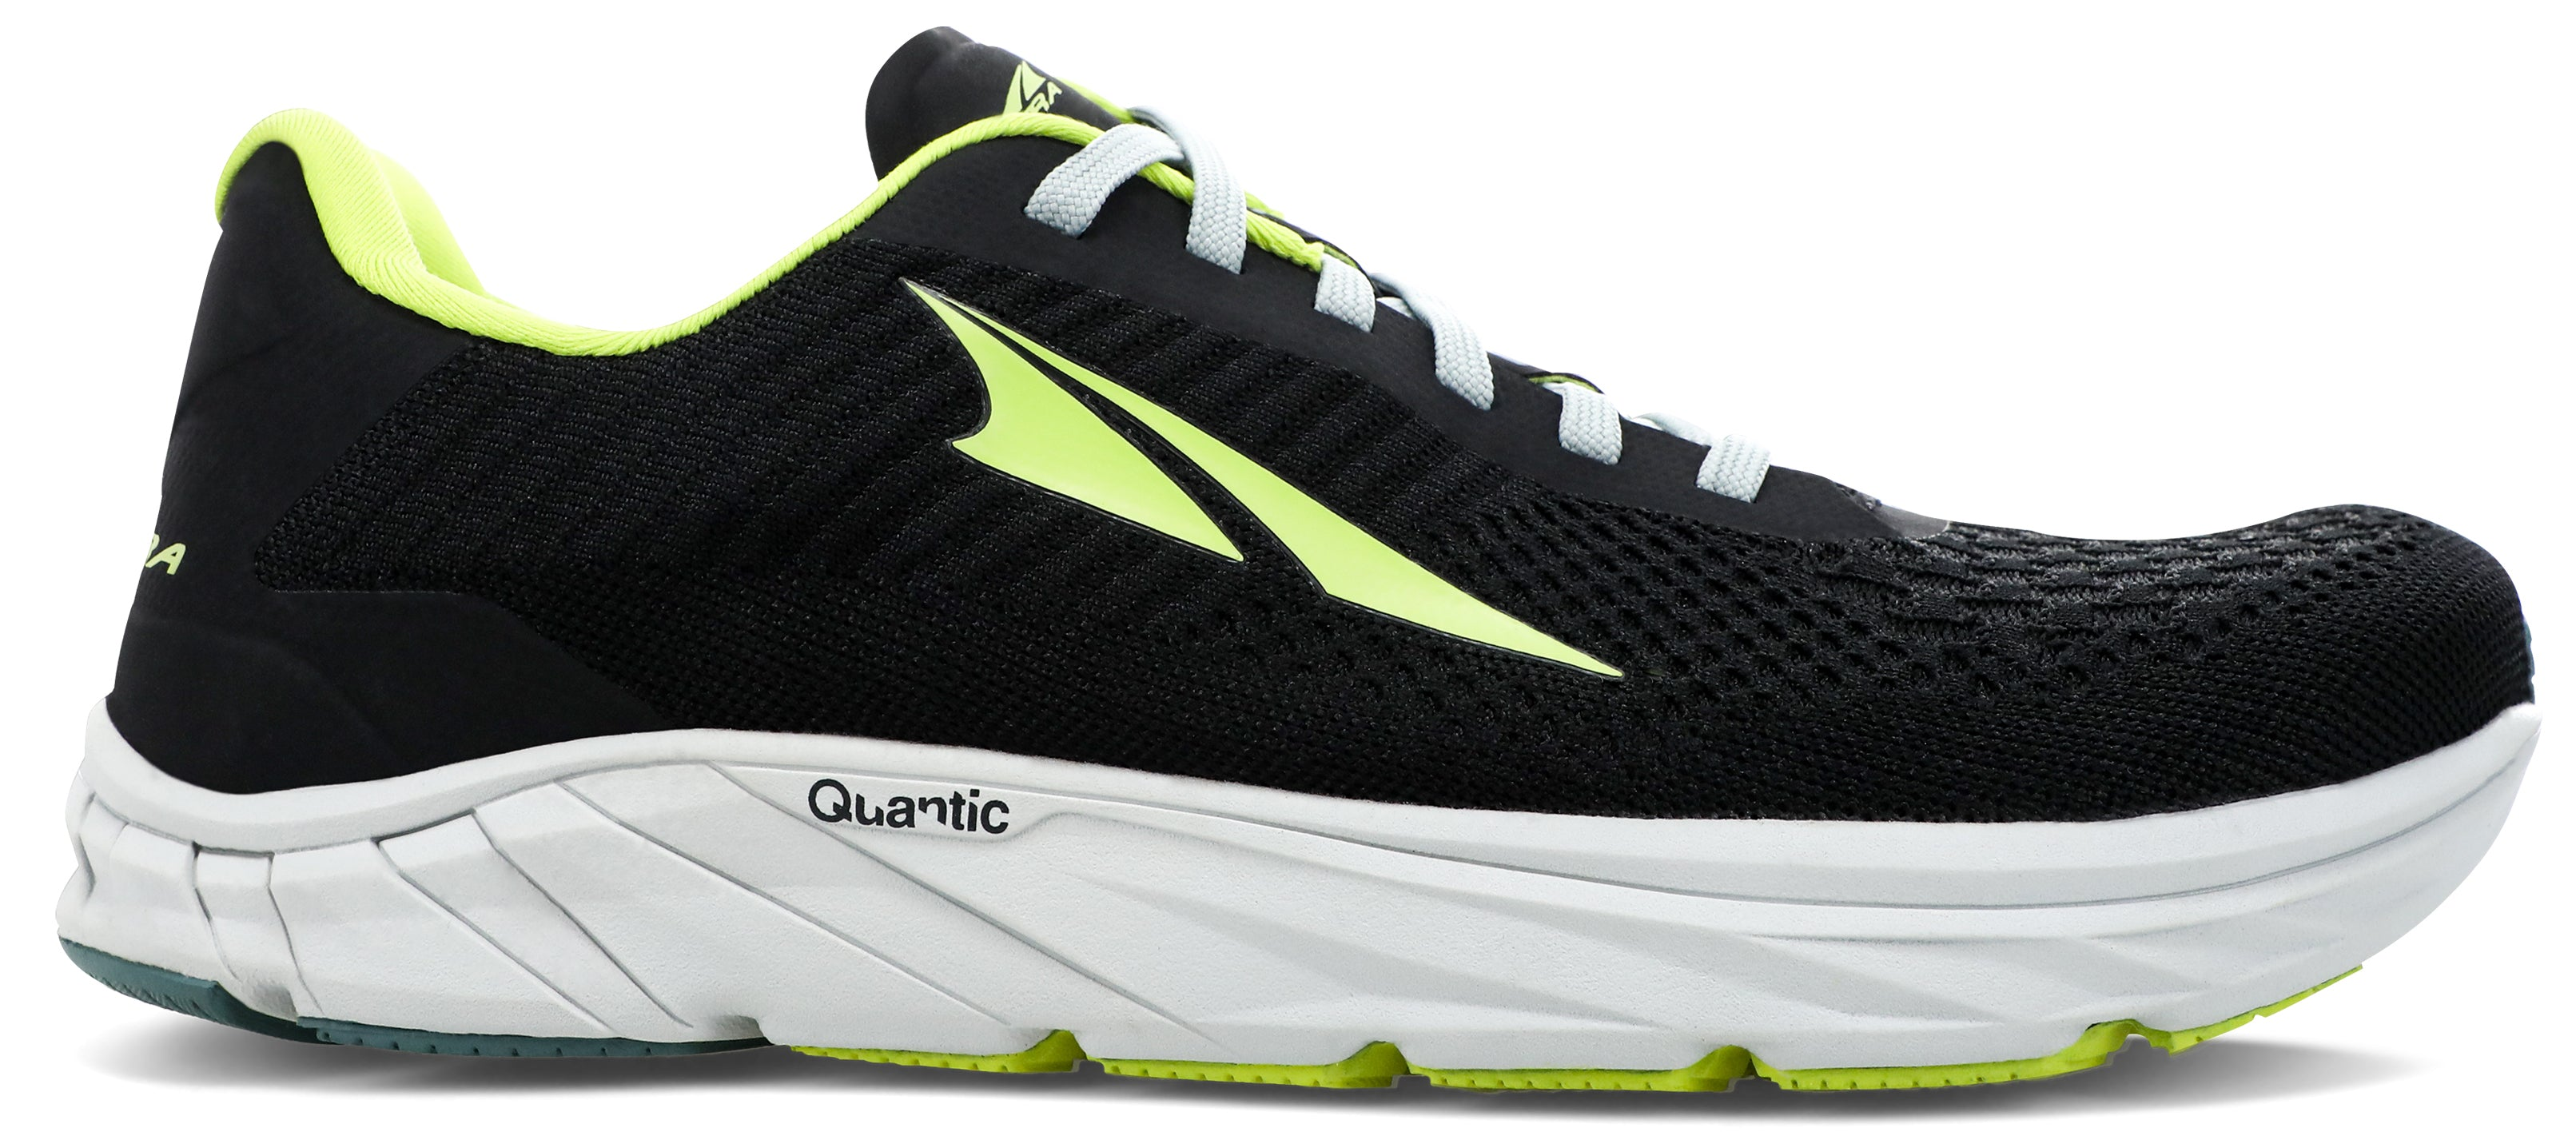 Altra Men's Torin 4.5 Plush Road Running Shoe in Black/Lime from the side